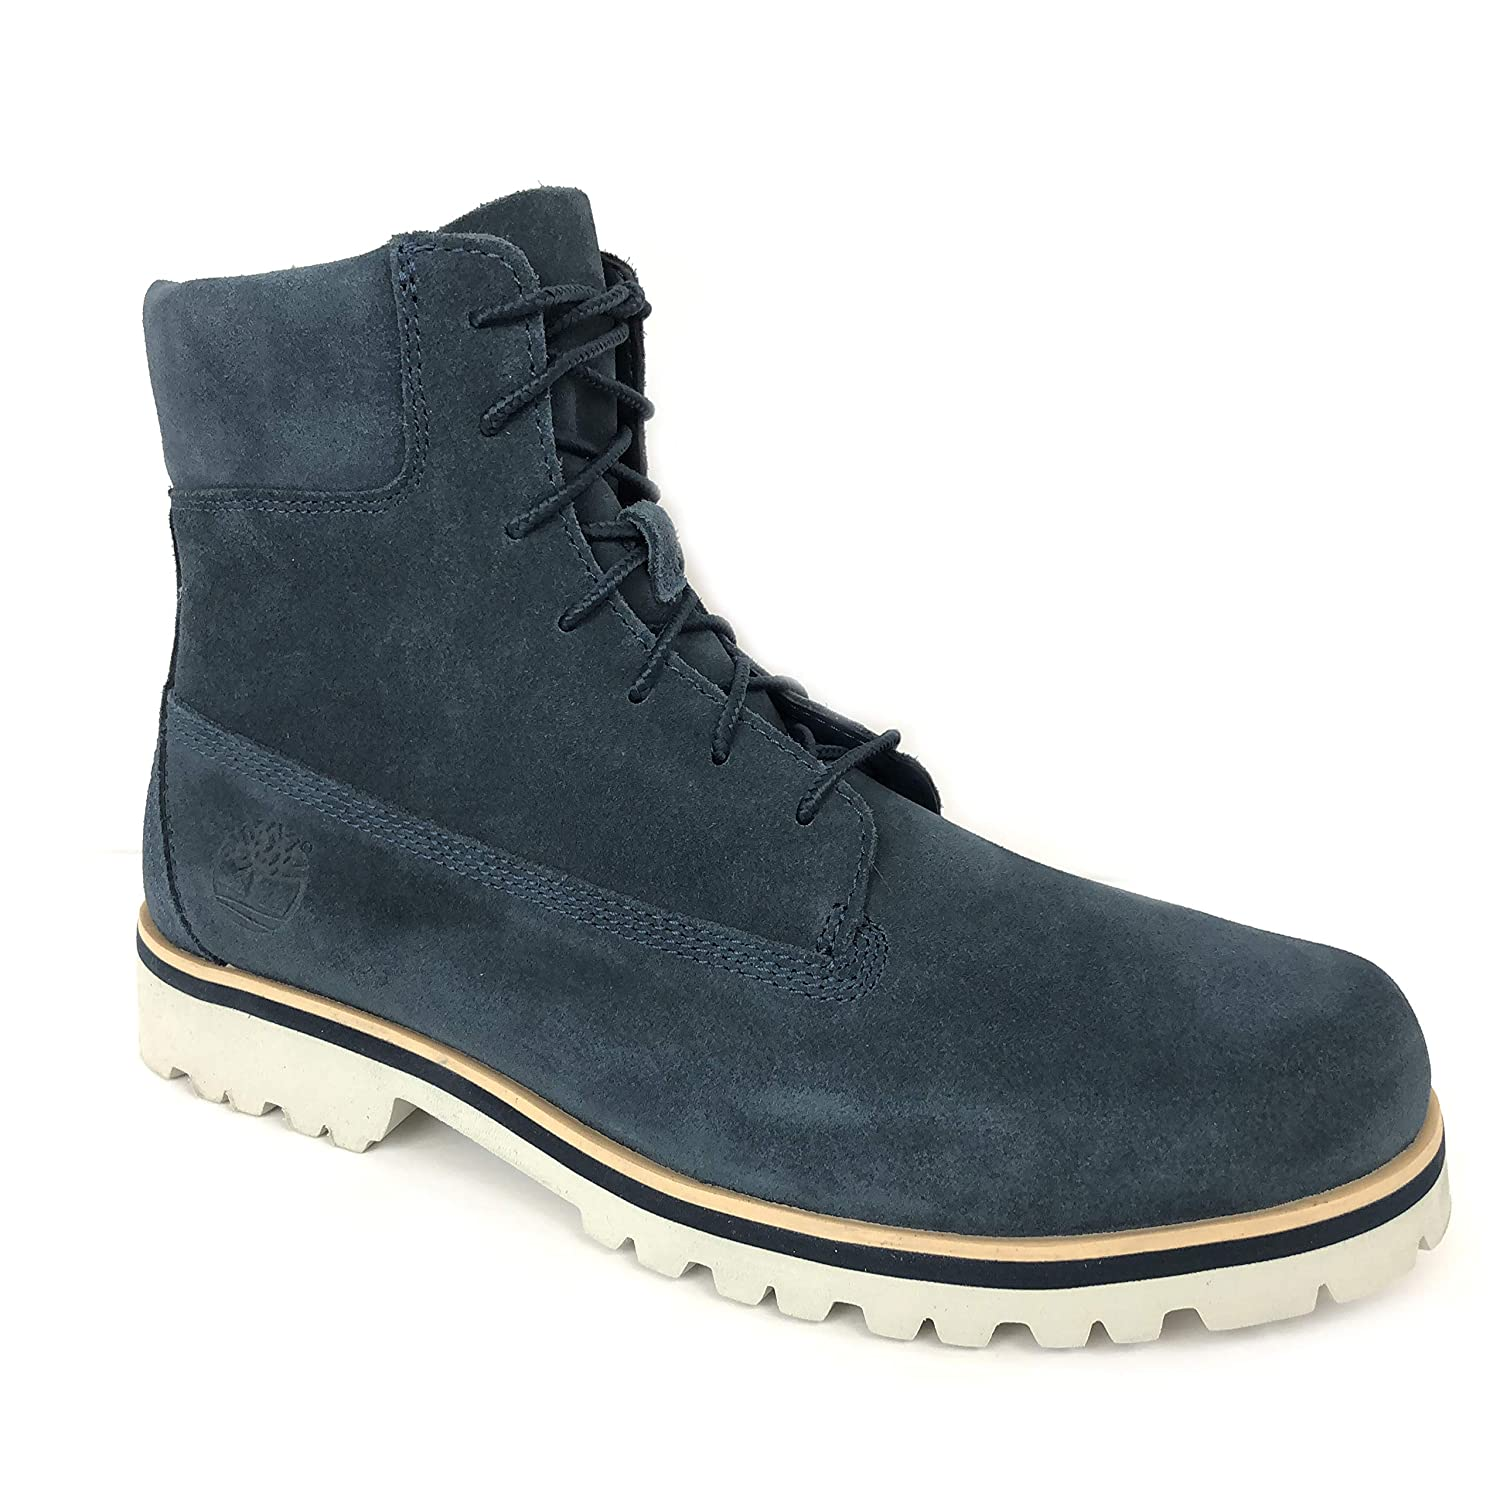 ce08a5a1 Amazon.com | Timberland Men's Chilmark 6 Inch Suede Navy Boots | Boots